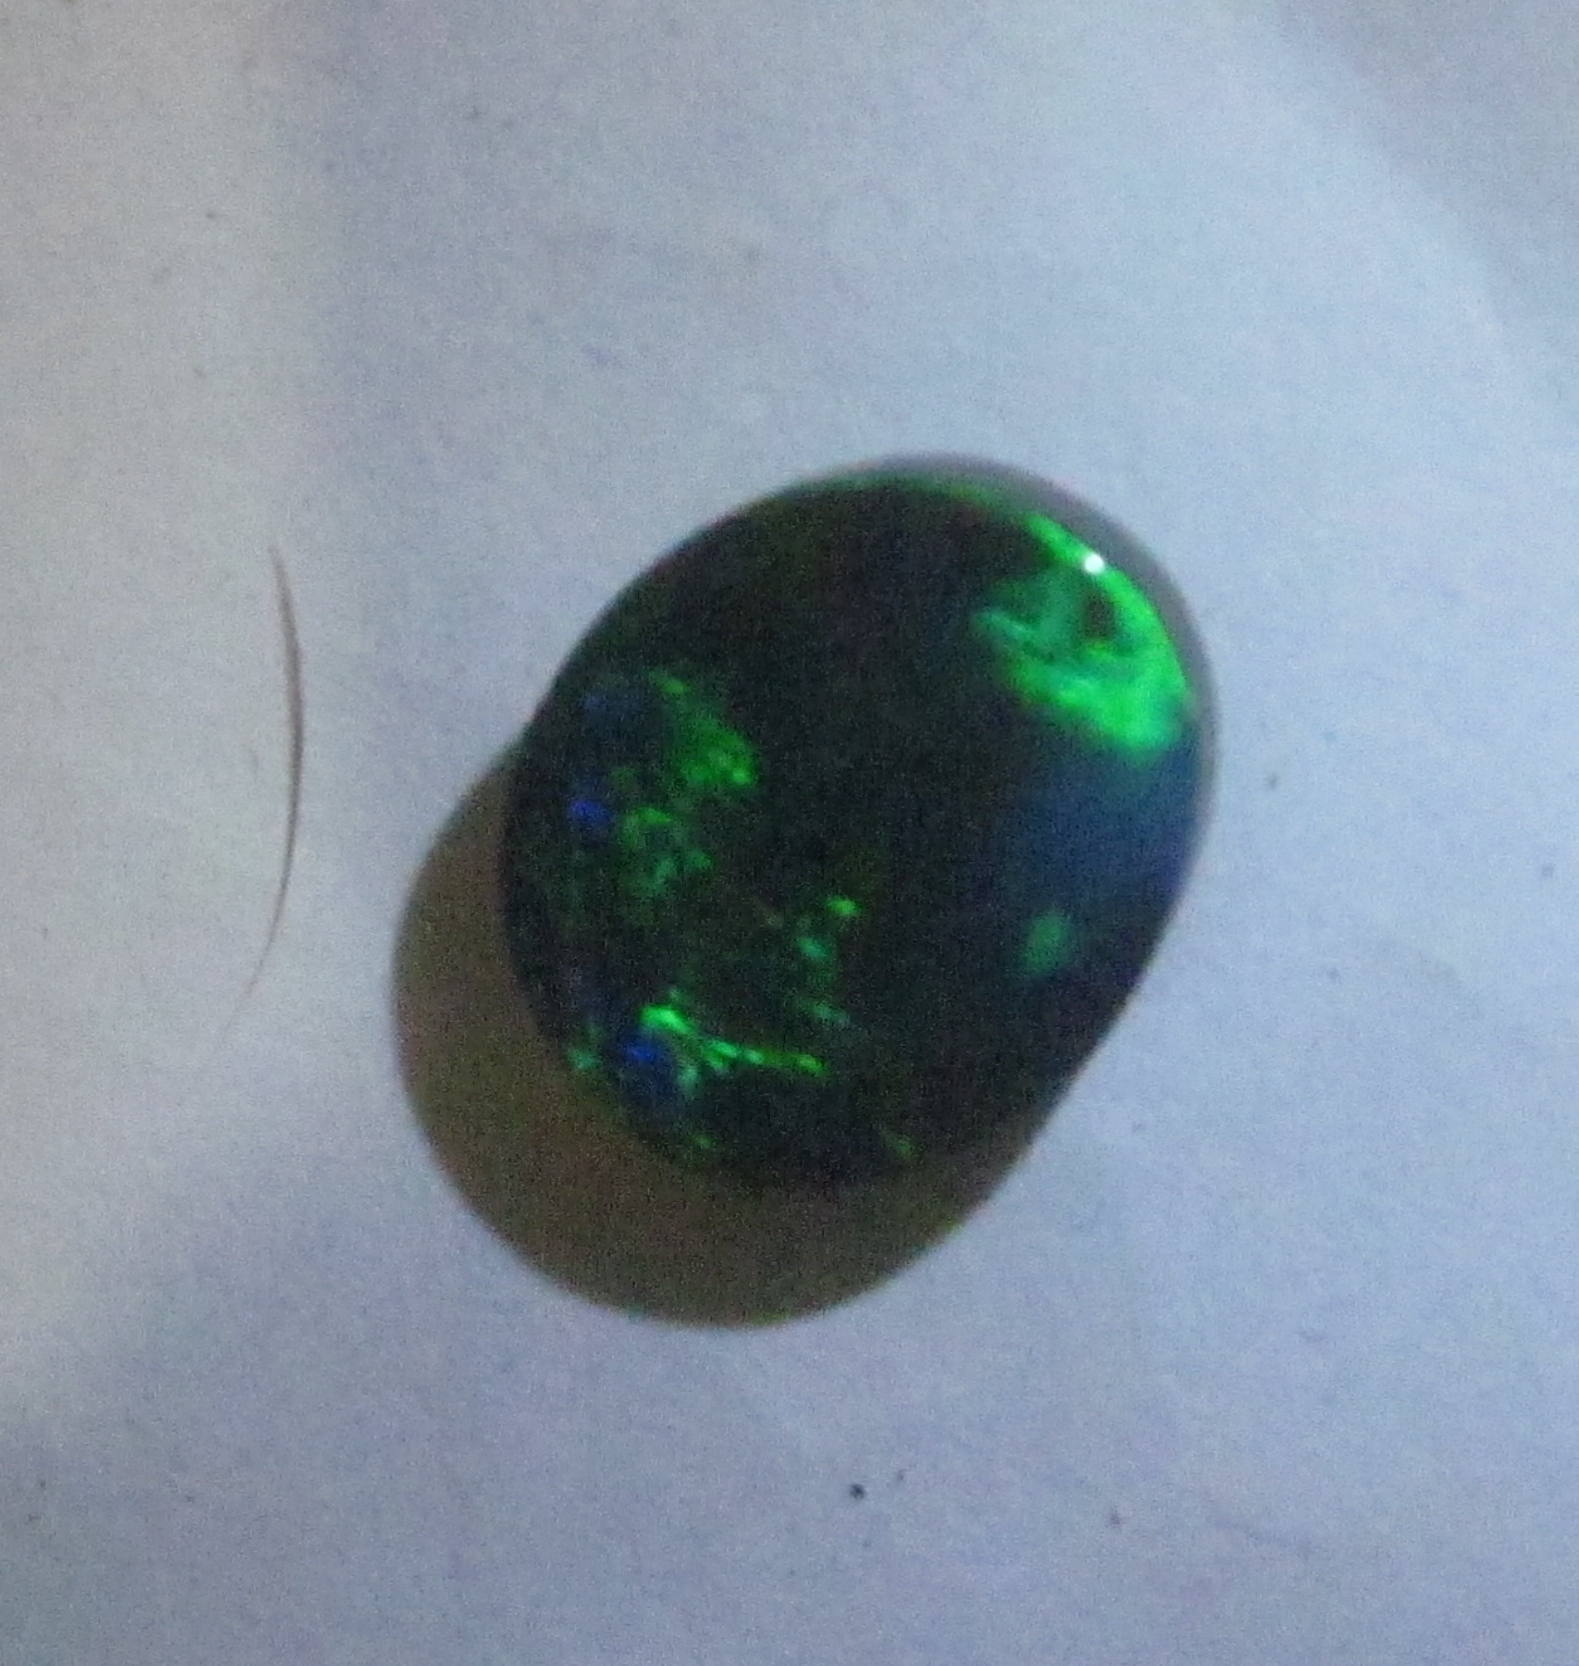 opal for sale,opals for sale,black opals for sale, australian opals for sale